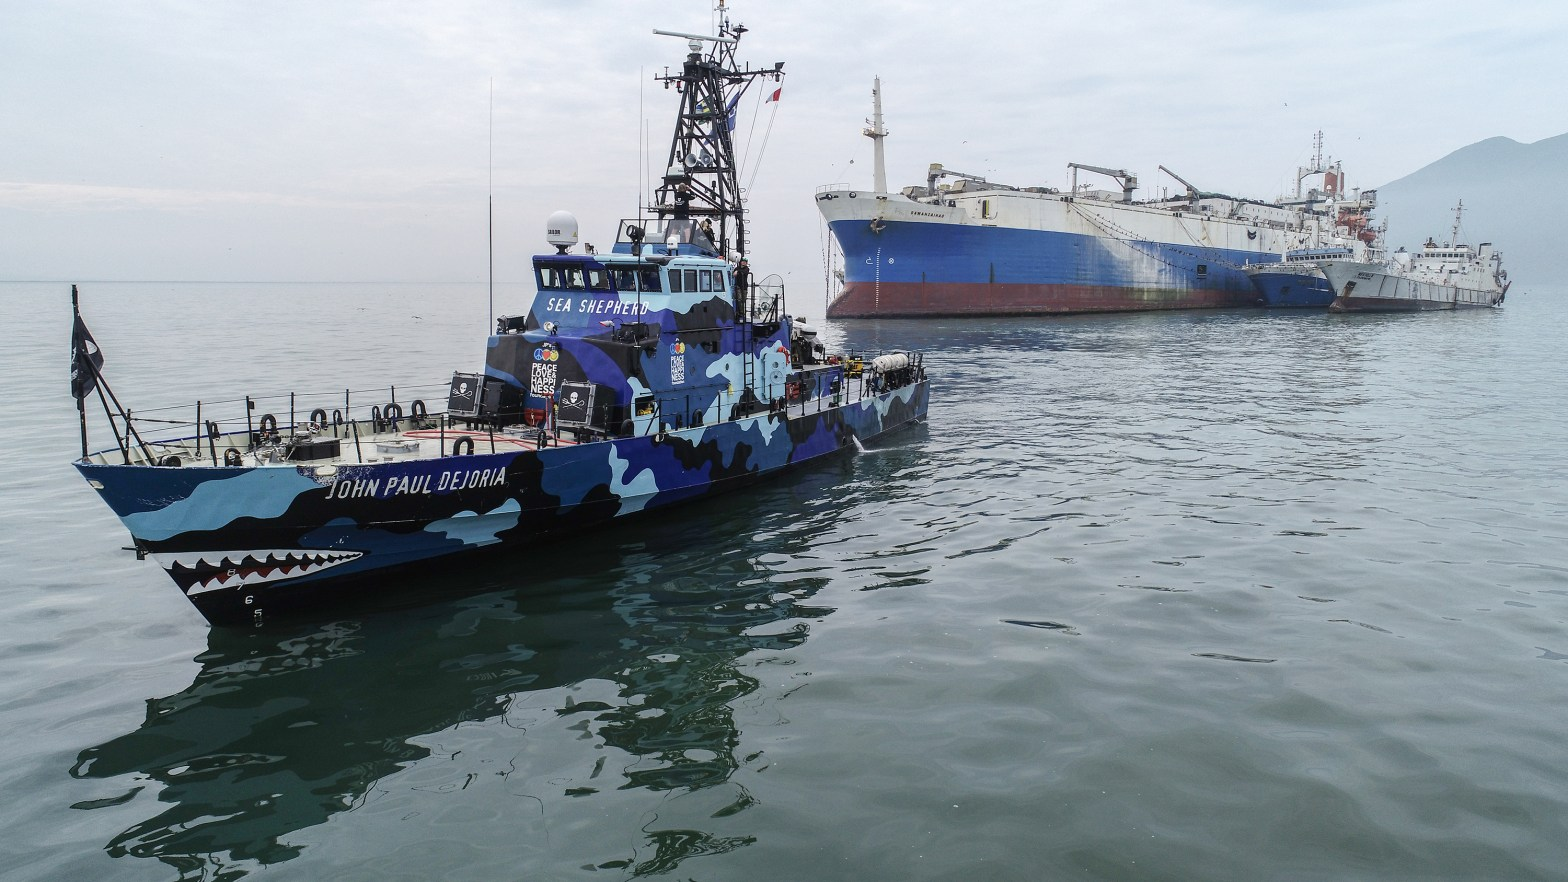 Largest Fish Factory Vessel In The World Arrested And Seized Sea Shepherd Conservation Society